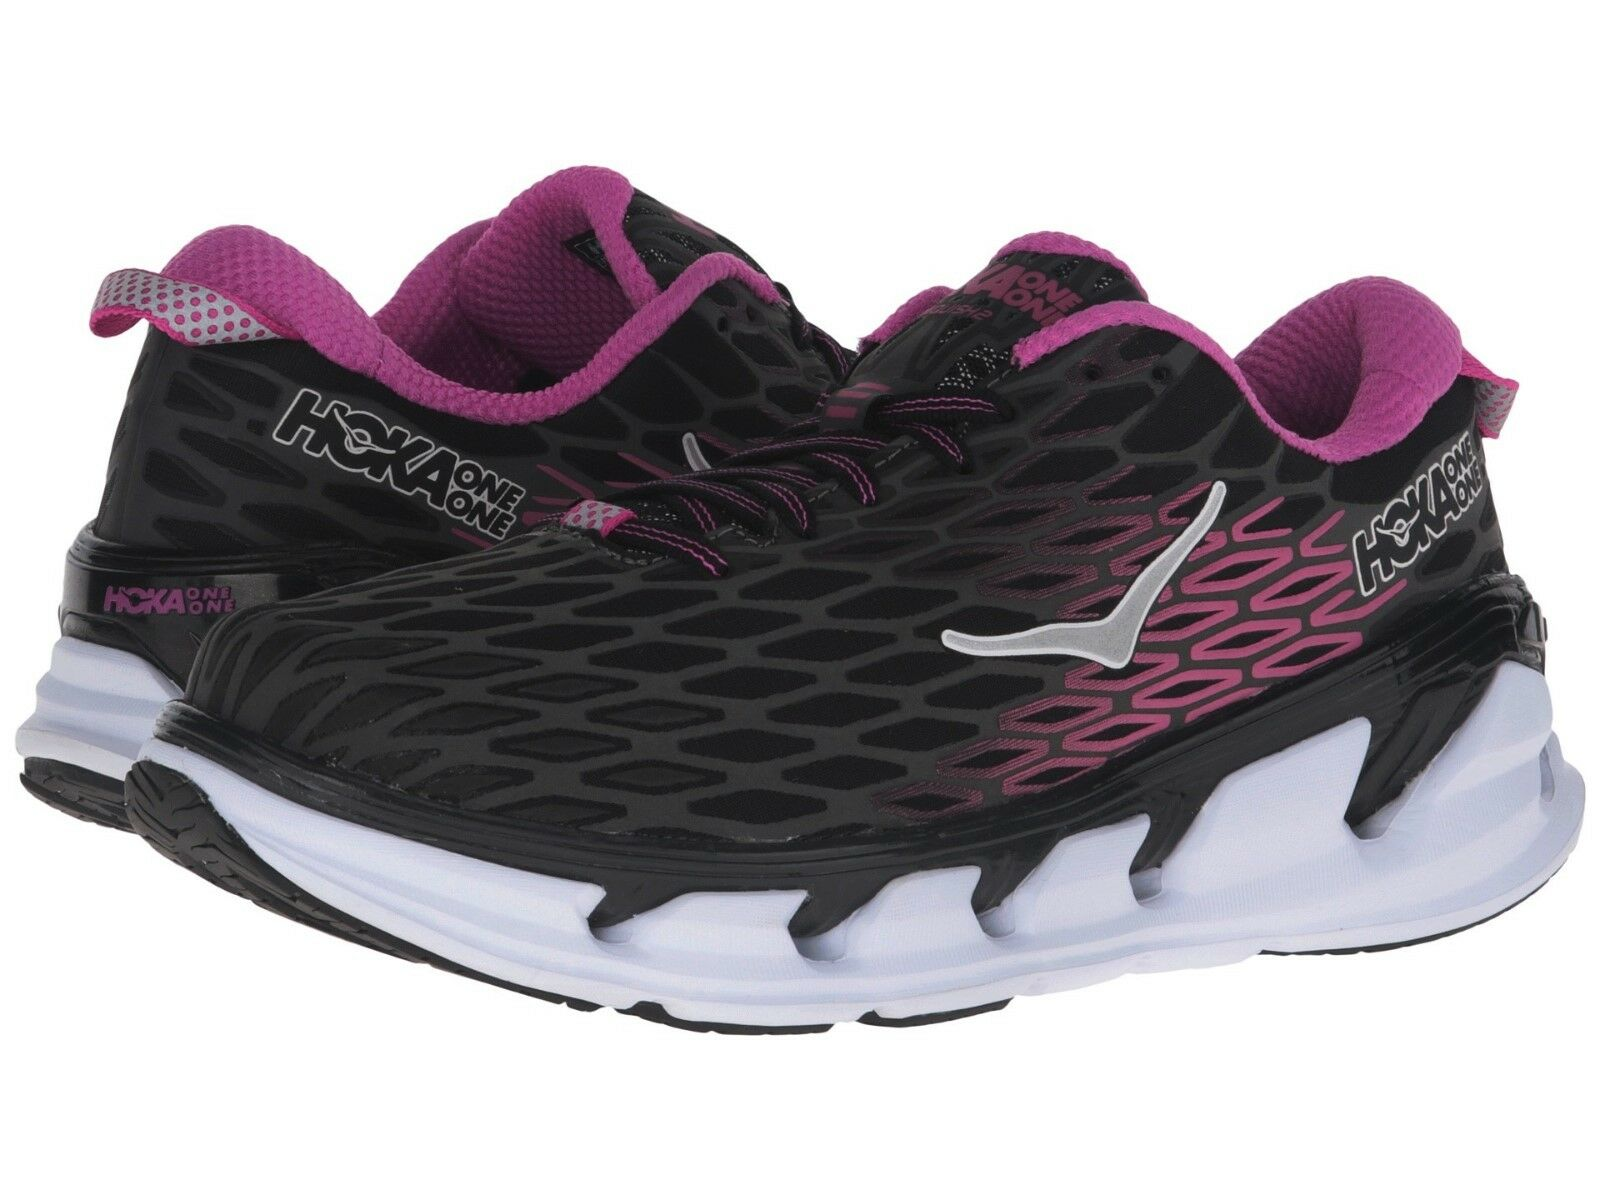 NEW femmes  HOKA ONE ONE VANQUISH 2 RUNNING  Chaussures  - 5 / EUR 36 - AUTHENTIC- 170